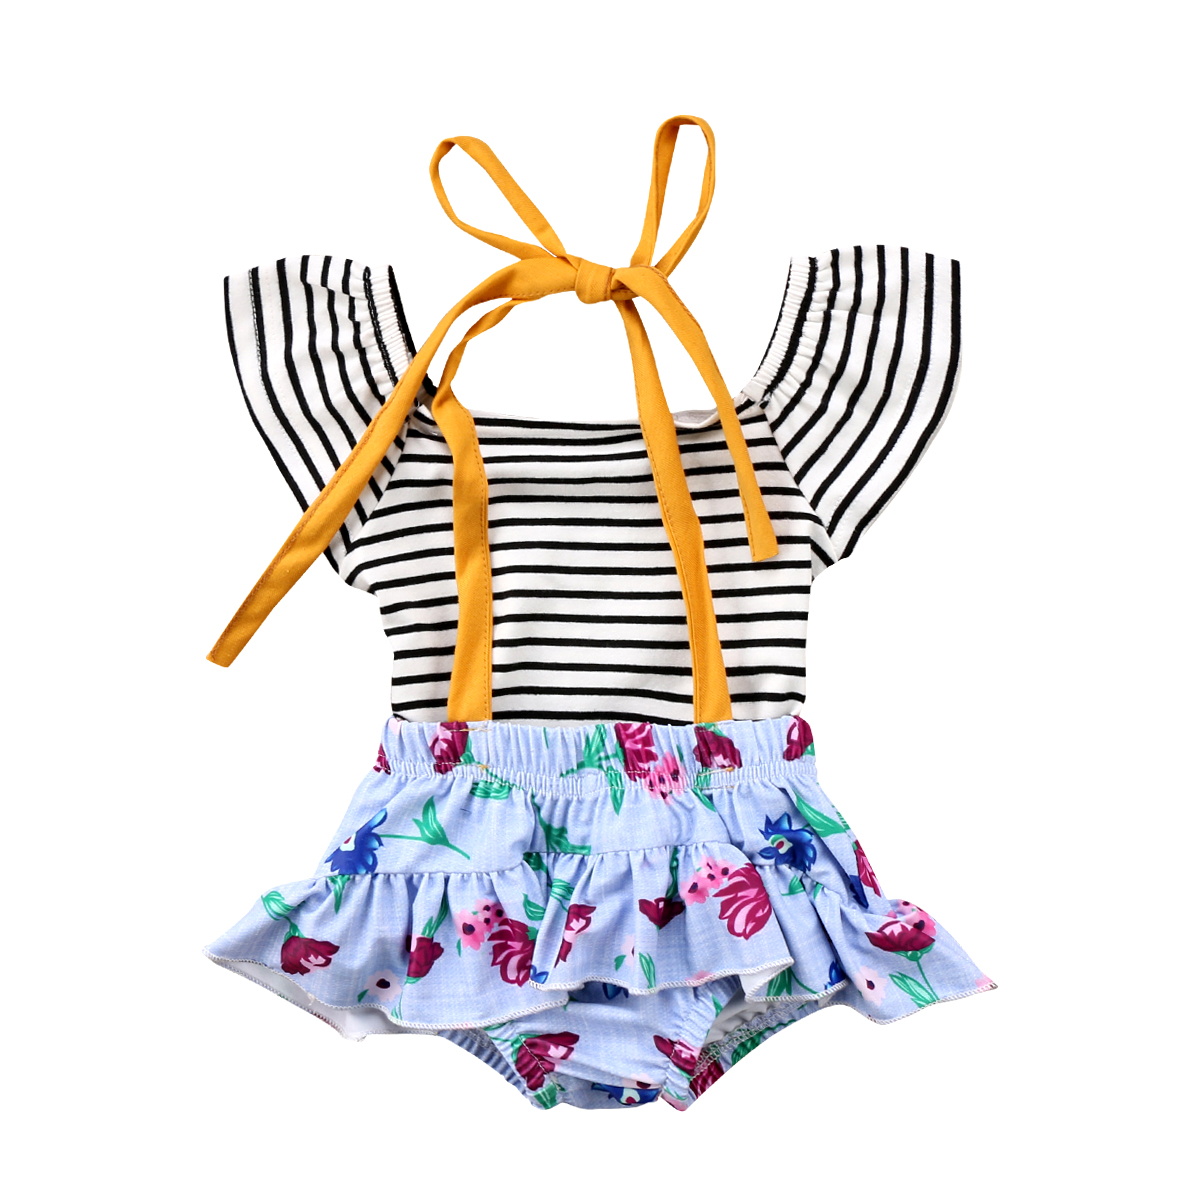 2PCS Pudcoco Newborn Toddler Baby Girl HOT SALE Short Sleeve Striped Top+Floral Ruffle Pants Fashion Clothes Sets 0-24M